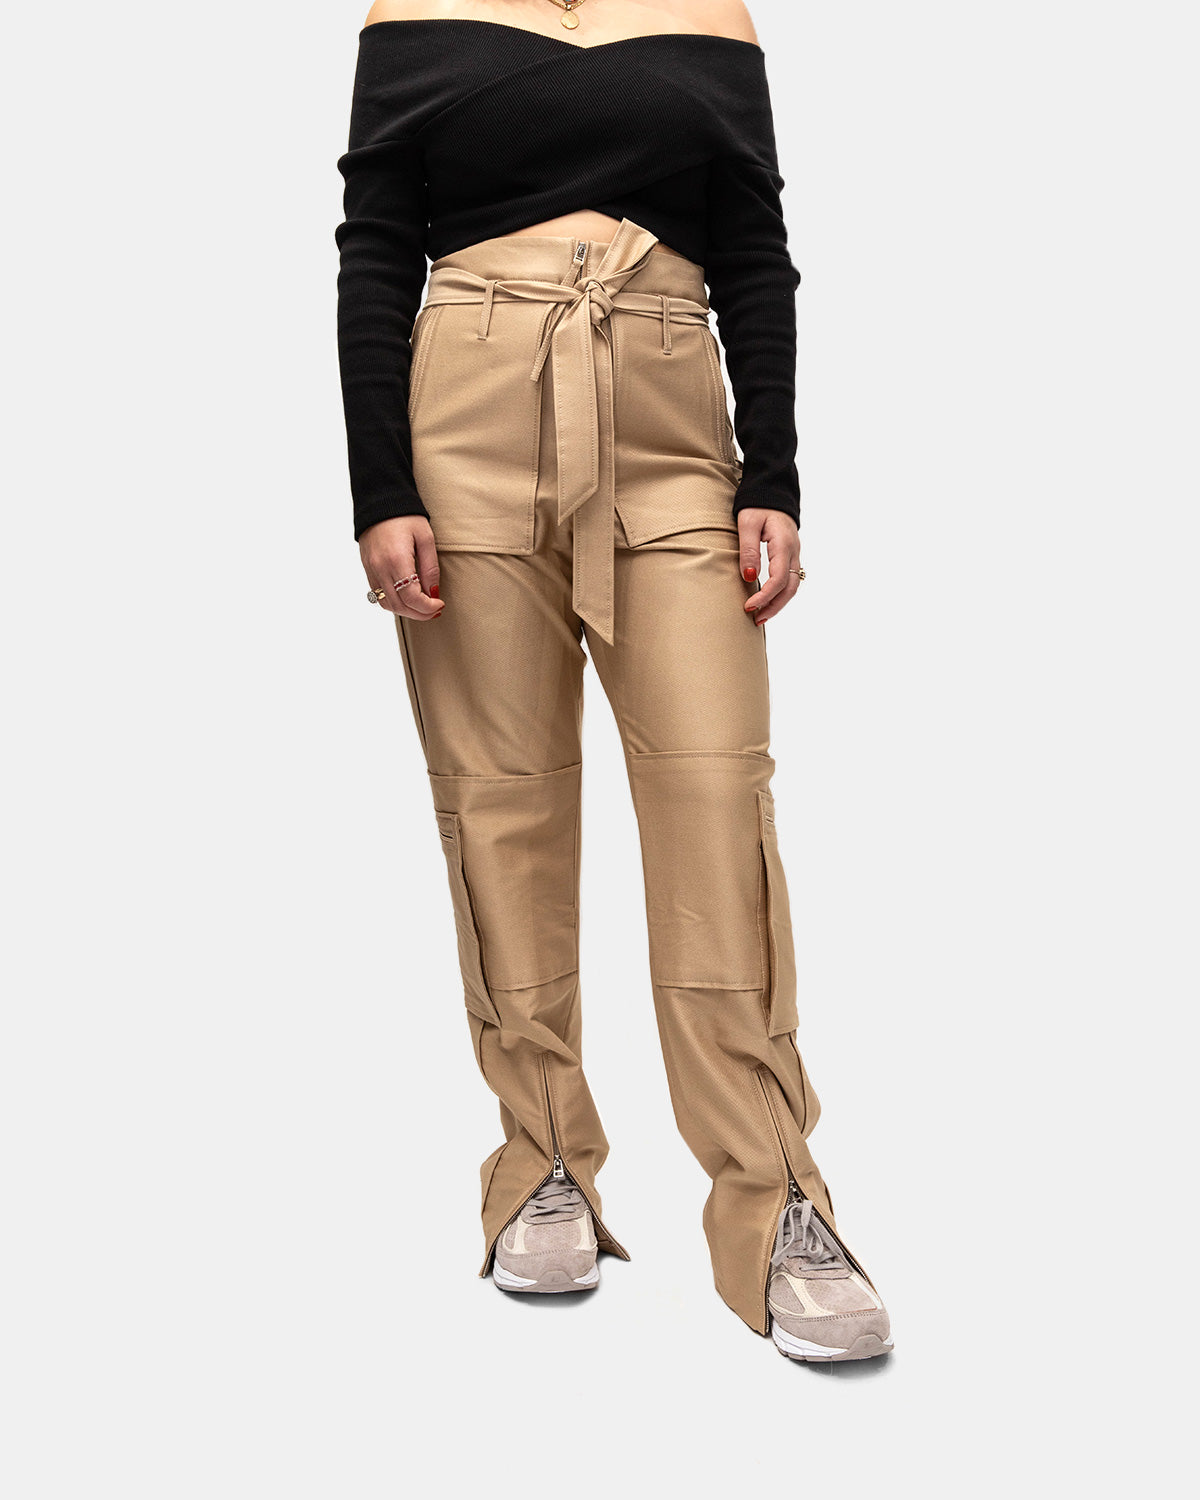 Opening Ceremony - Women's Military Pant (Camel)